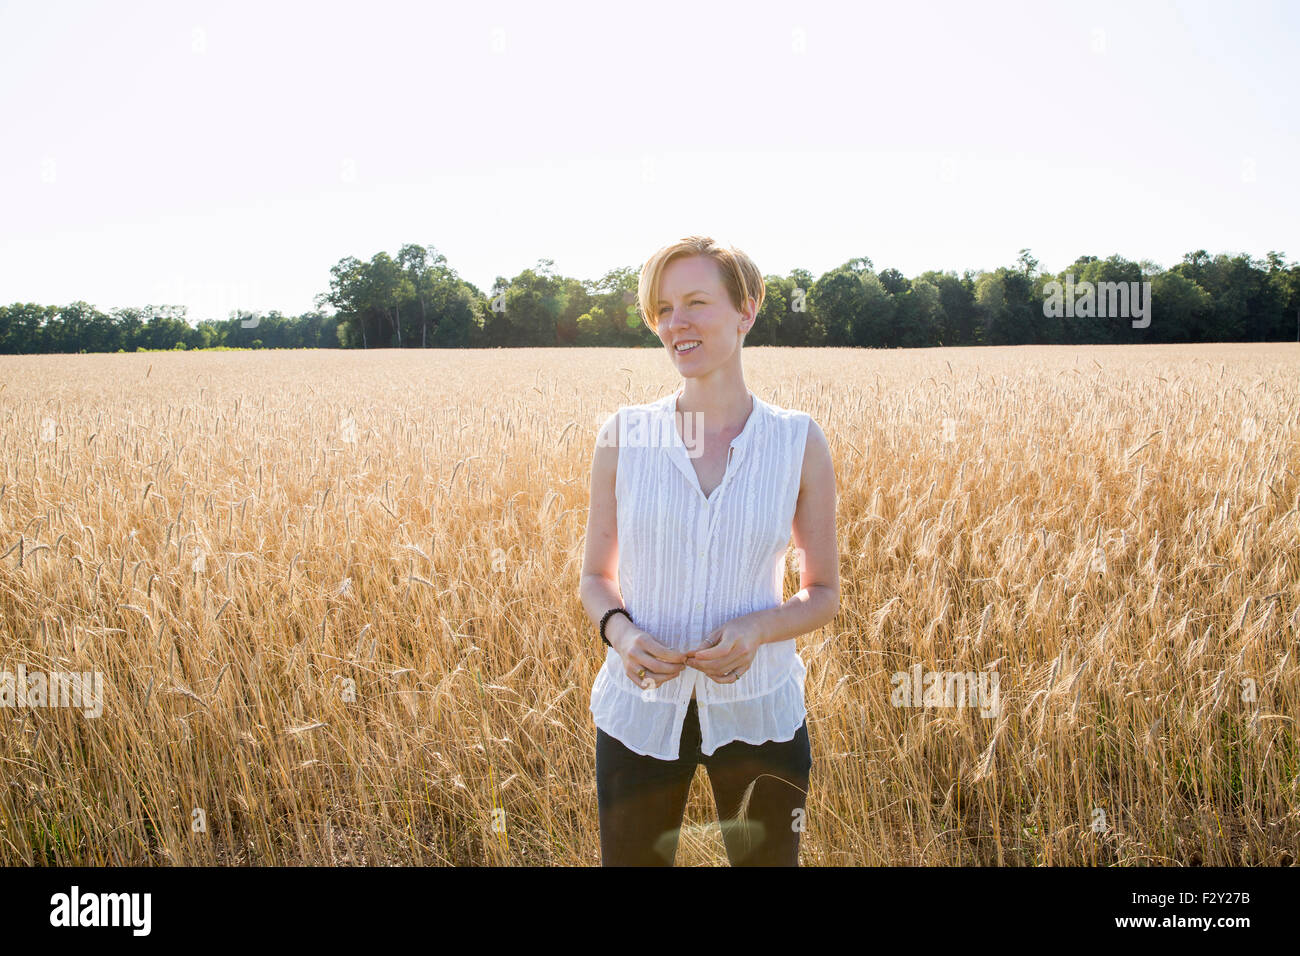 Half length portrait of a young woman standing in a cornfield. - Stock Image